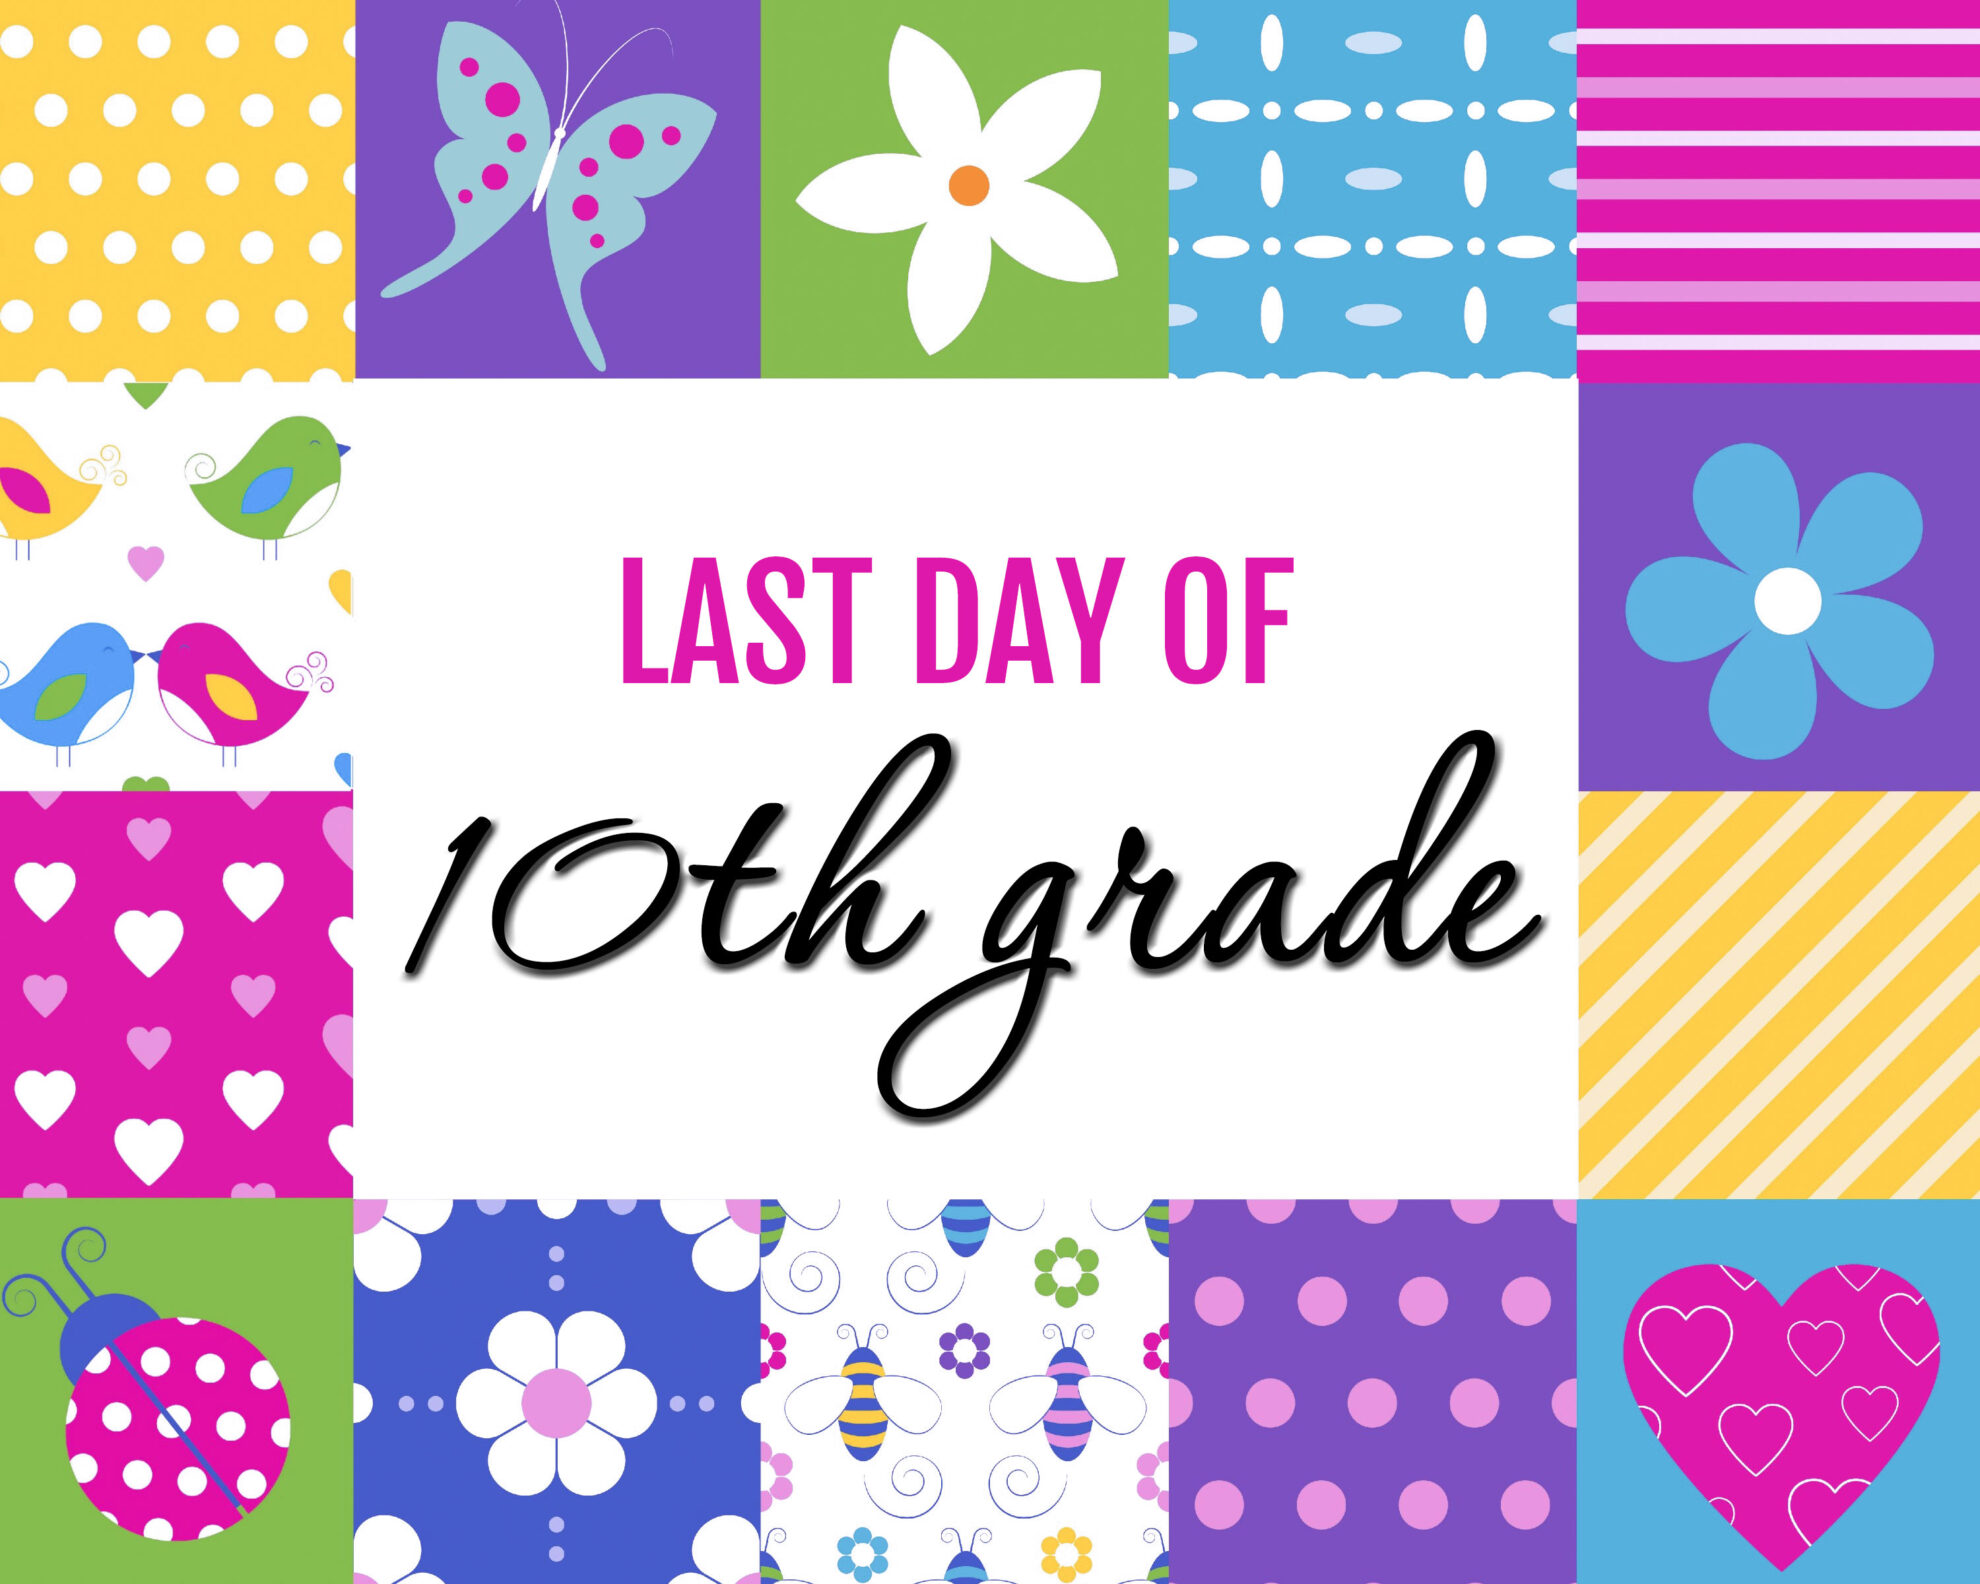 Colorful Girl Last Day of 10th grade Free Printable